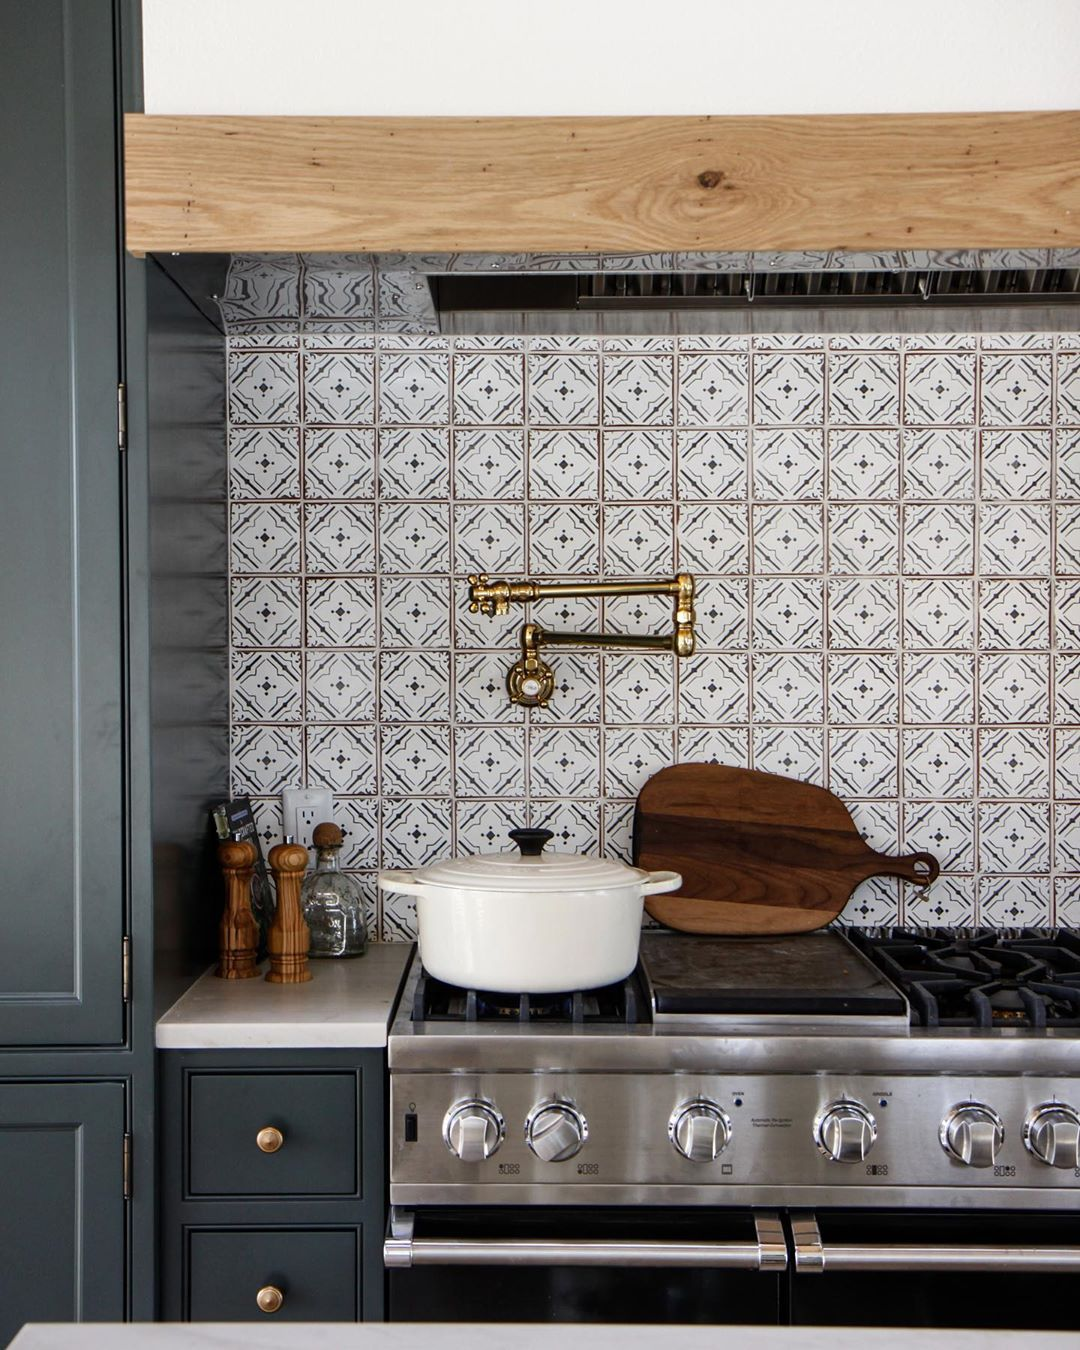 Park Oak On Instagram Given The Increase In Time Spent In The Kitchen Lately We T Unique Kitchen Backsplash Kitchen Tiles Design Kitchen Backsplash Designs